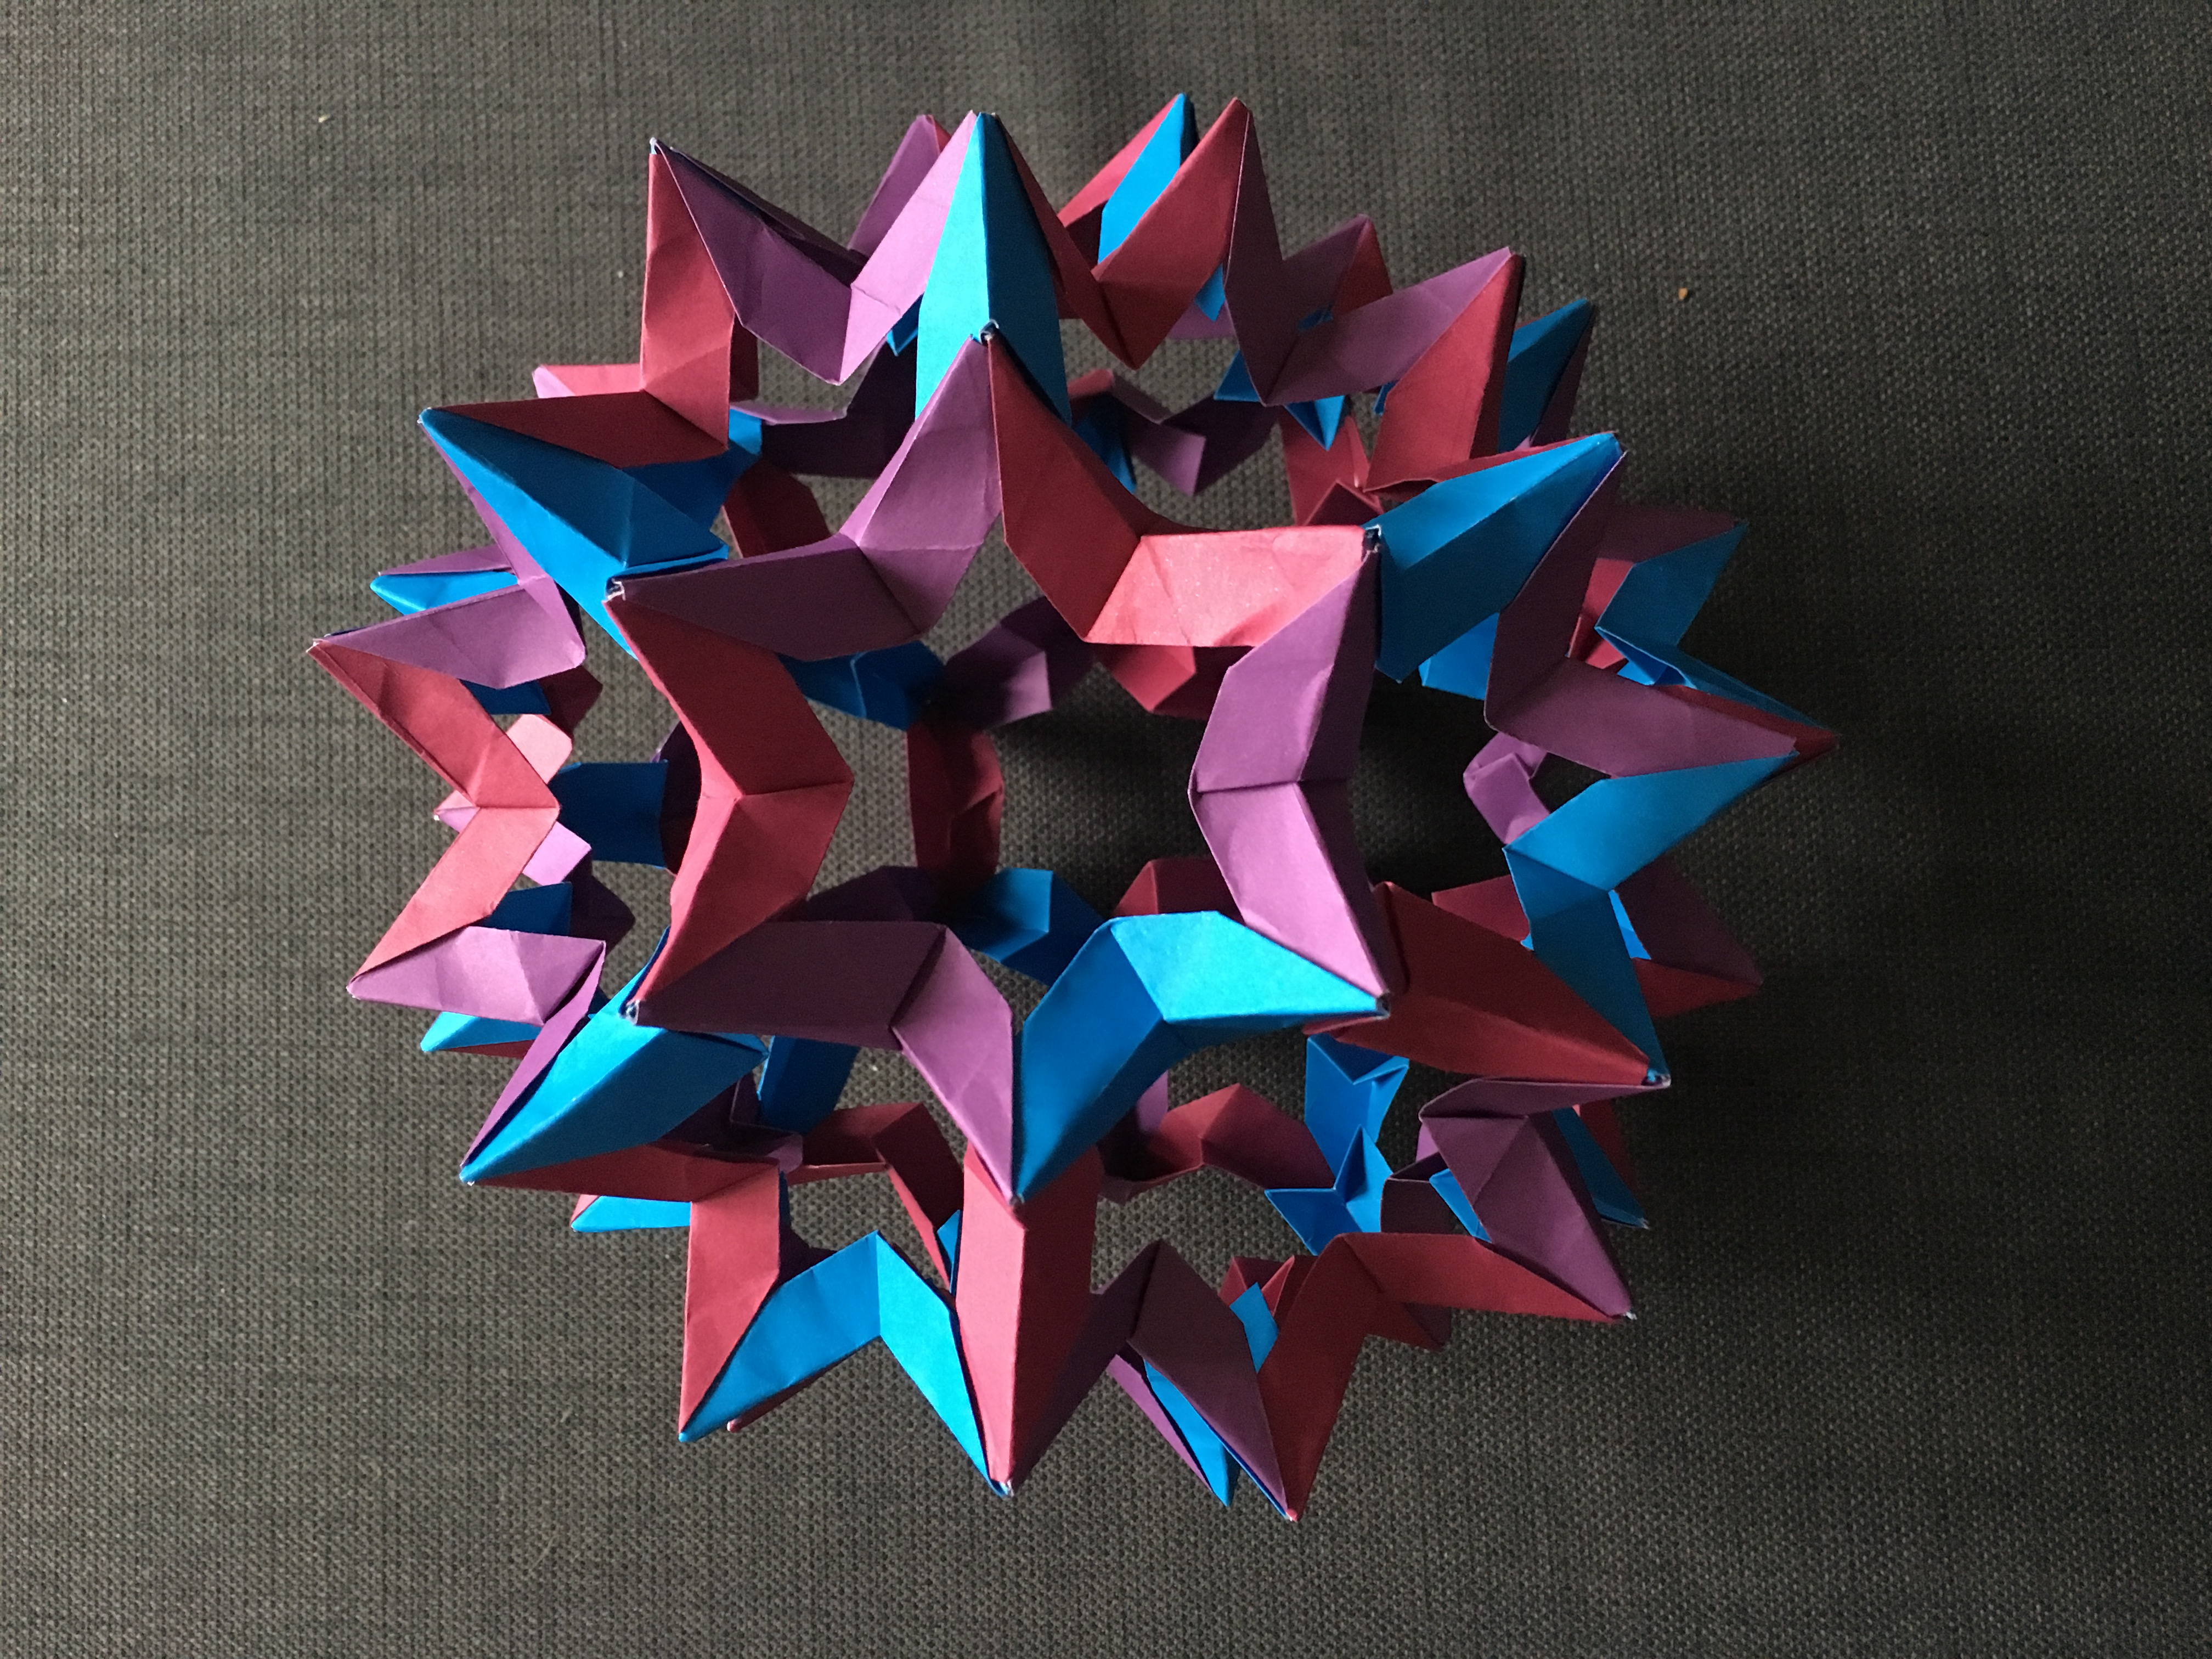 Modular origami polypompholyx star holes truncated icosahedron cc by sa 30 steve cook jeuxipadfo Gallery